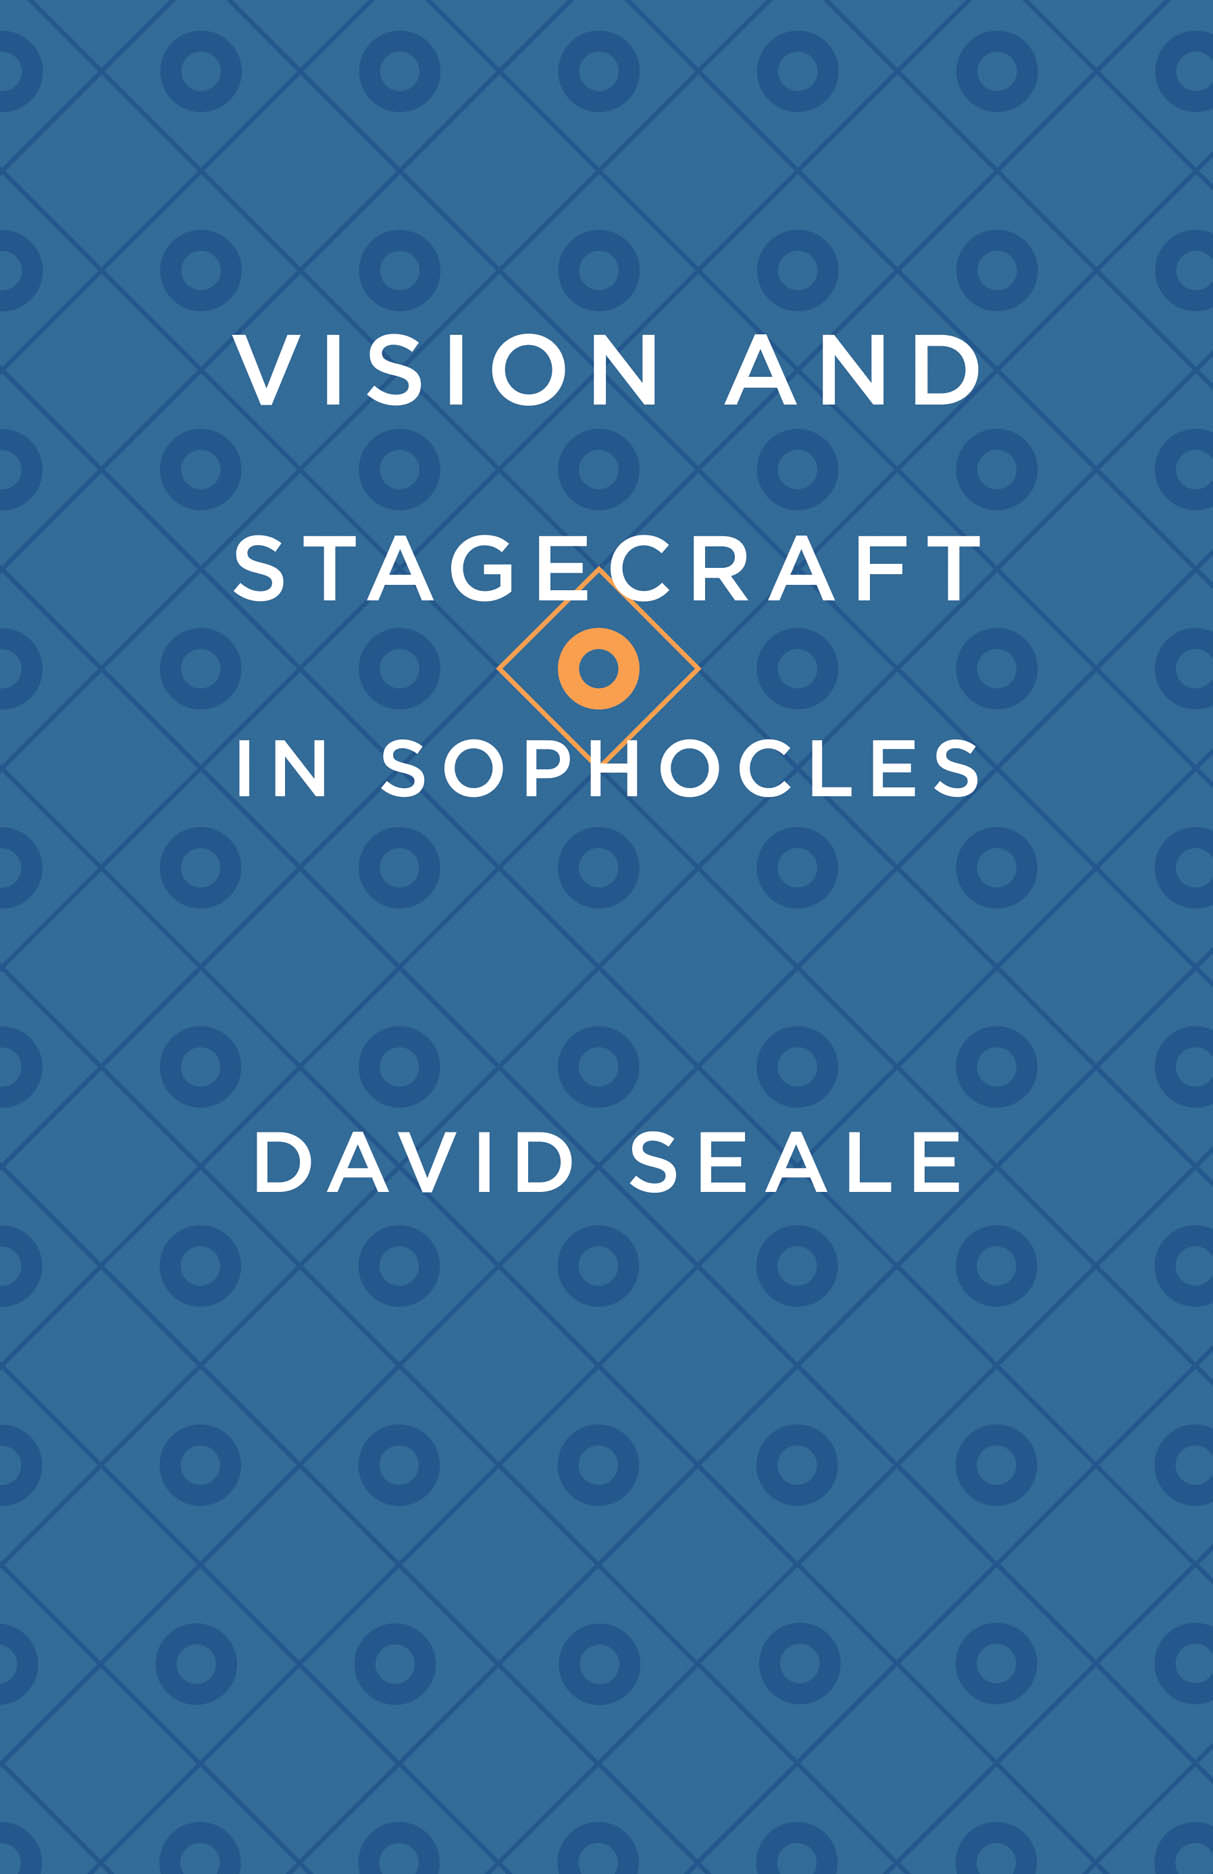 Vision and Stagecraft in Sophocles